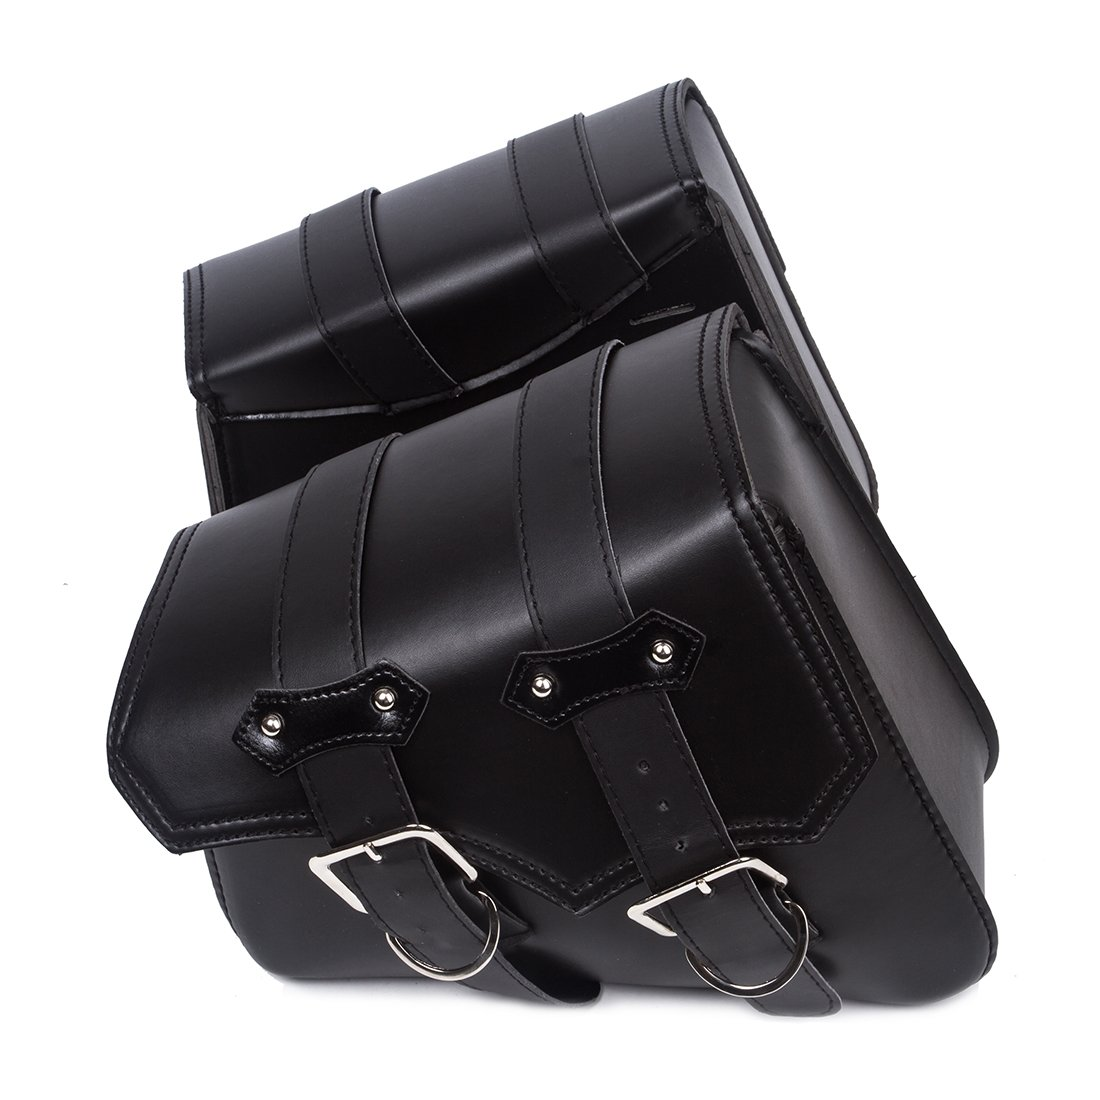 2PC Motorcycle Black triangular Synthetic Leather 2-Strap Saddlebag Tool Bag